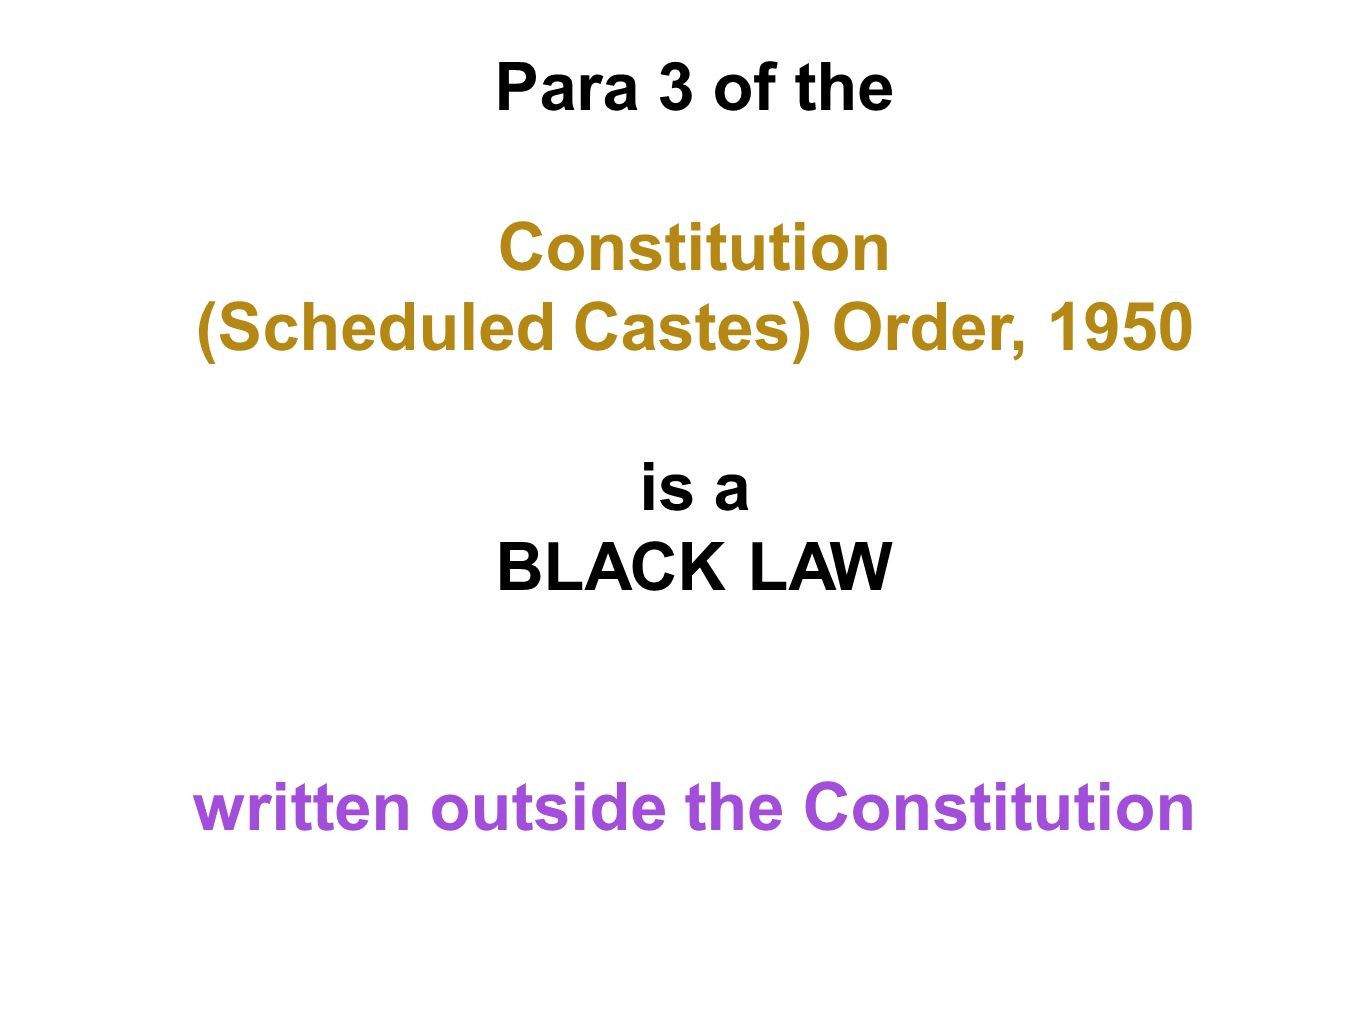 Para 3 of the Constitution (Scheduled Castes) Order, 1950 is a BLACK LAW written outside the Constitution